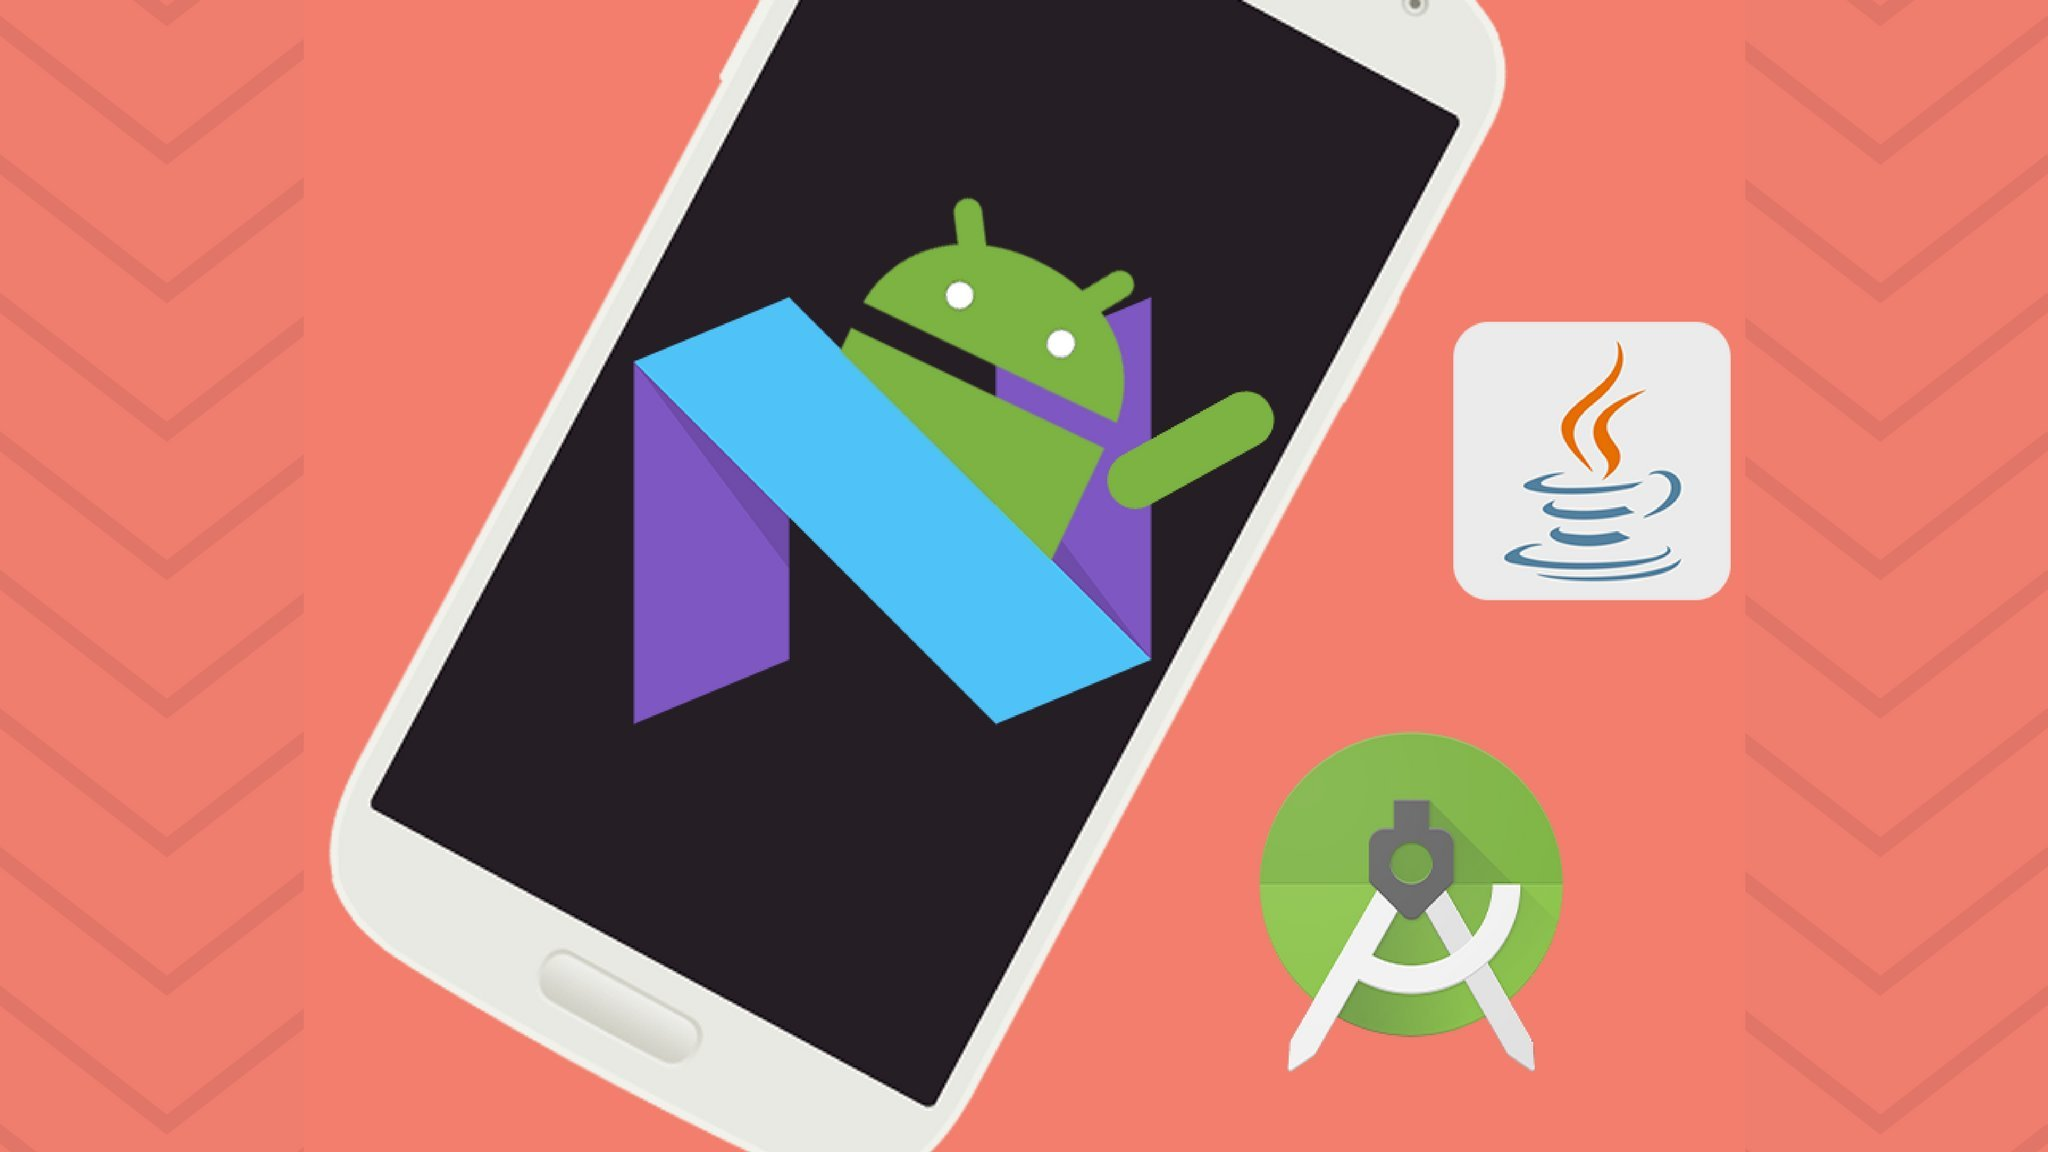 How to Make Android Apps with No Programming Experience